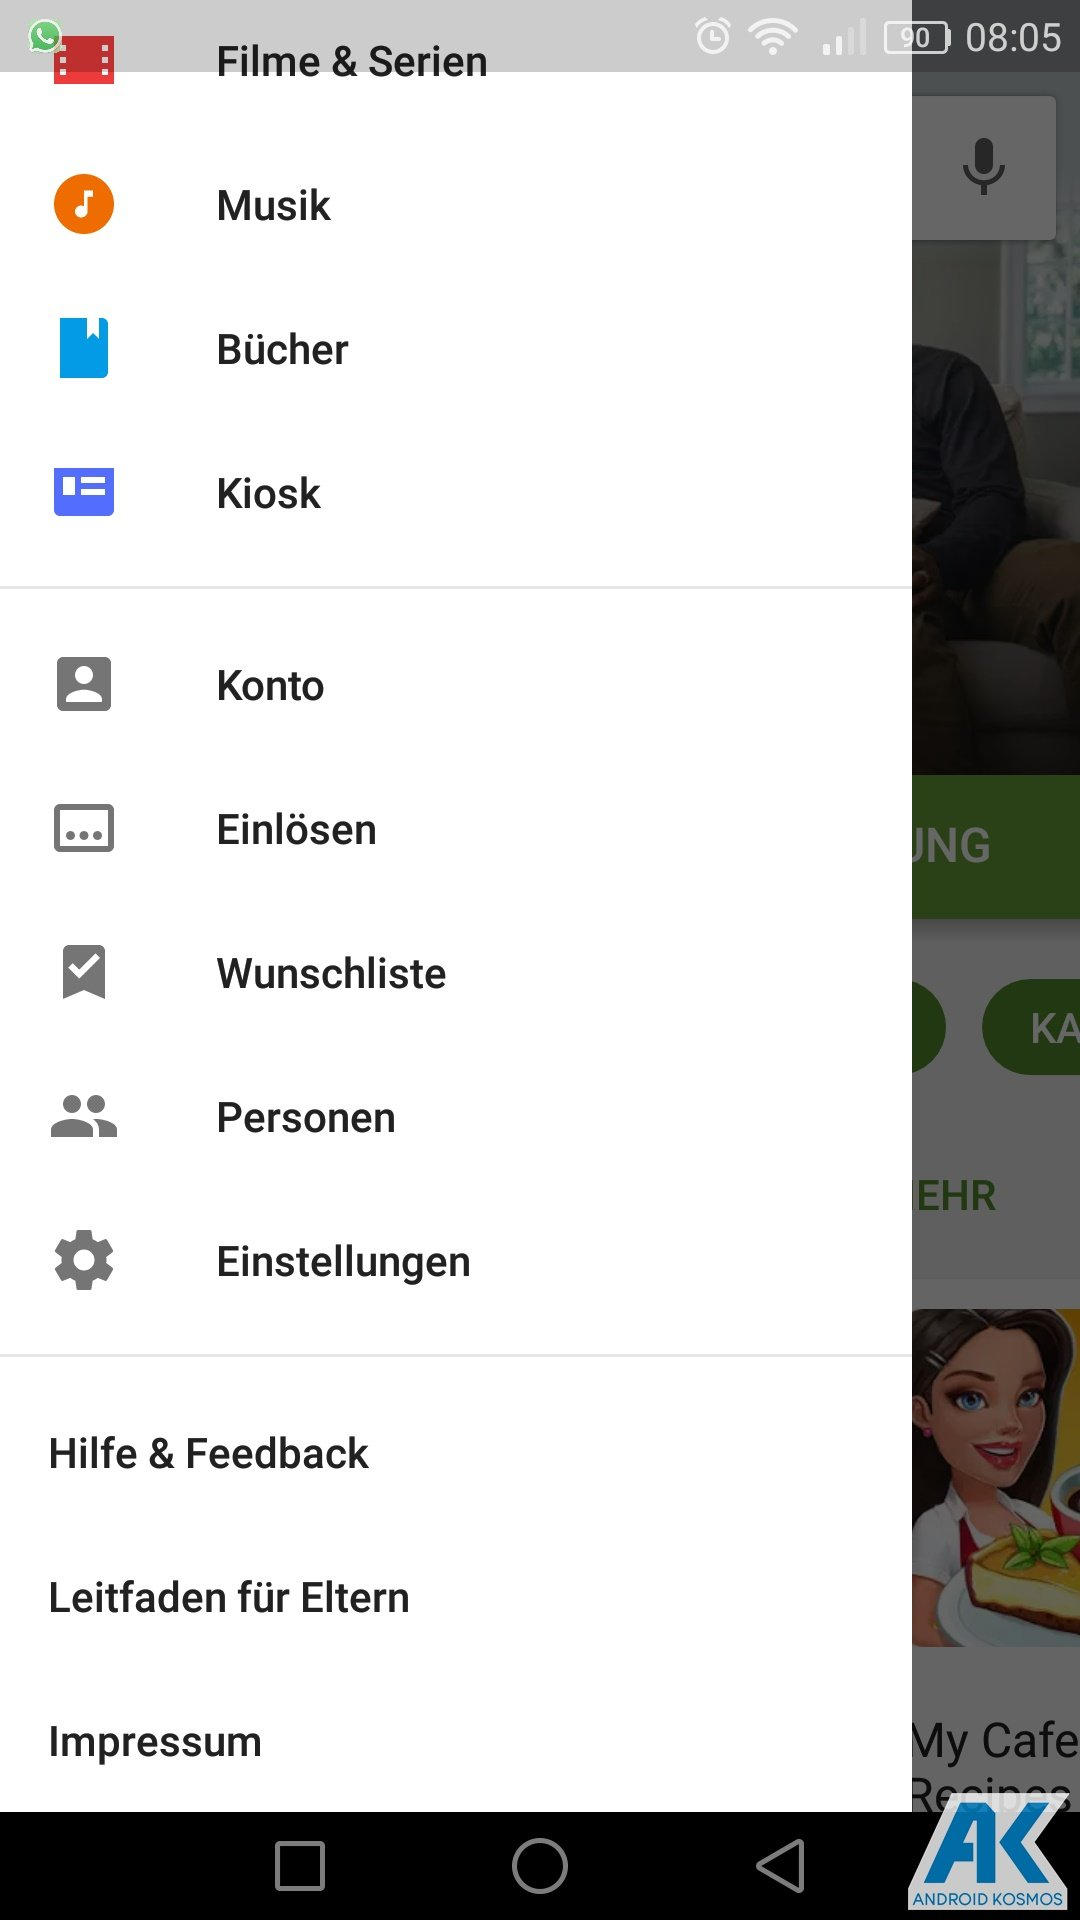 AndroidKosmos | Play Store: Family Library und neue Kategorien 10